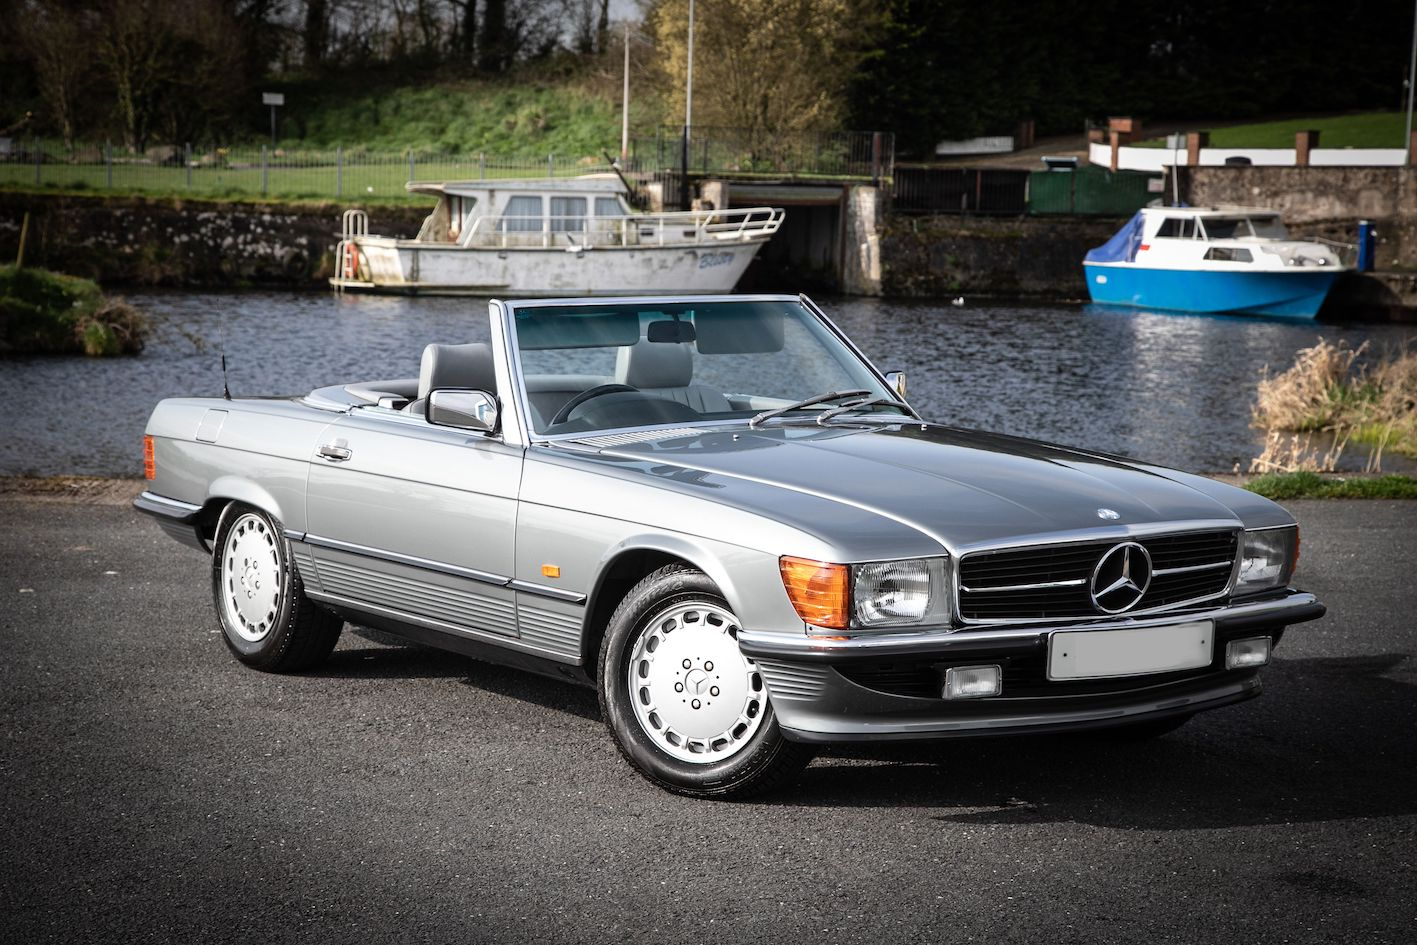 1989 Mercedes 300 SL sold at auction